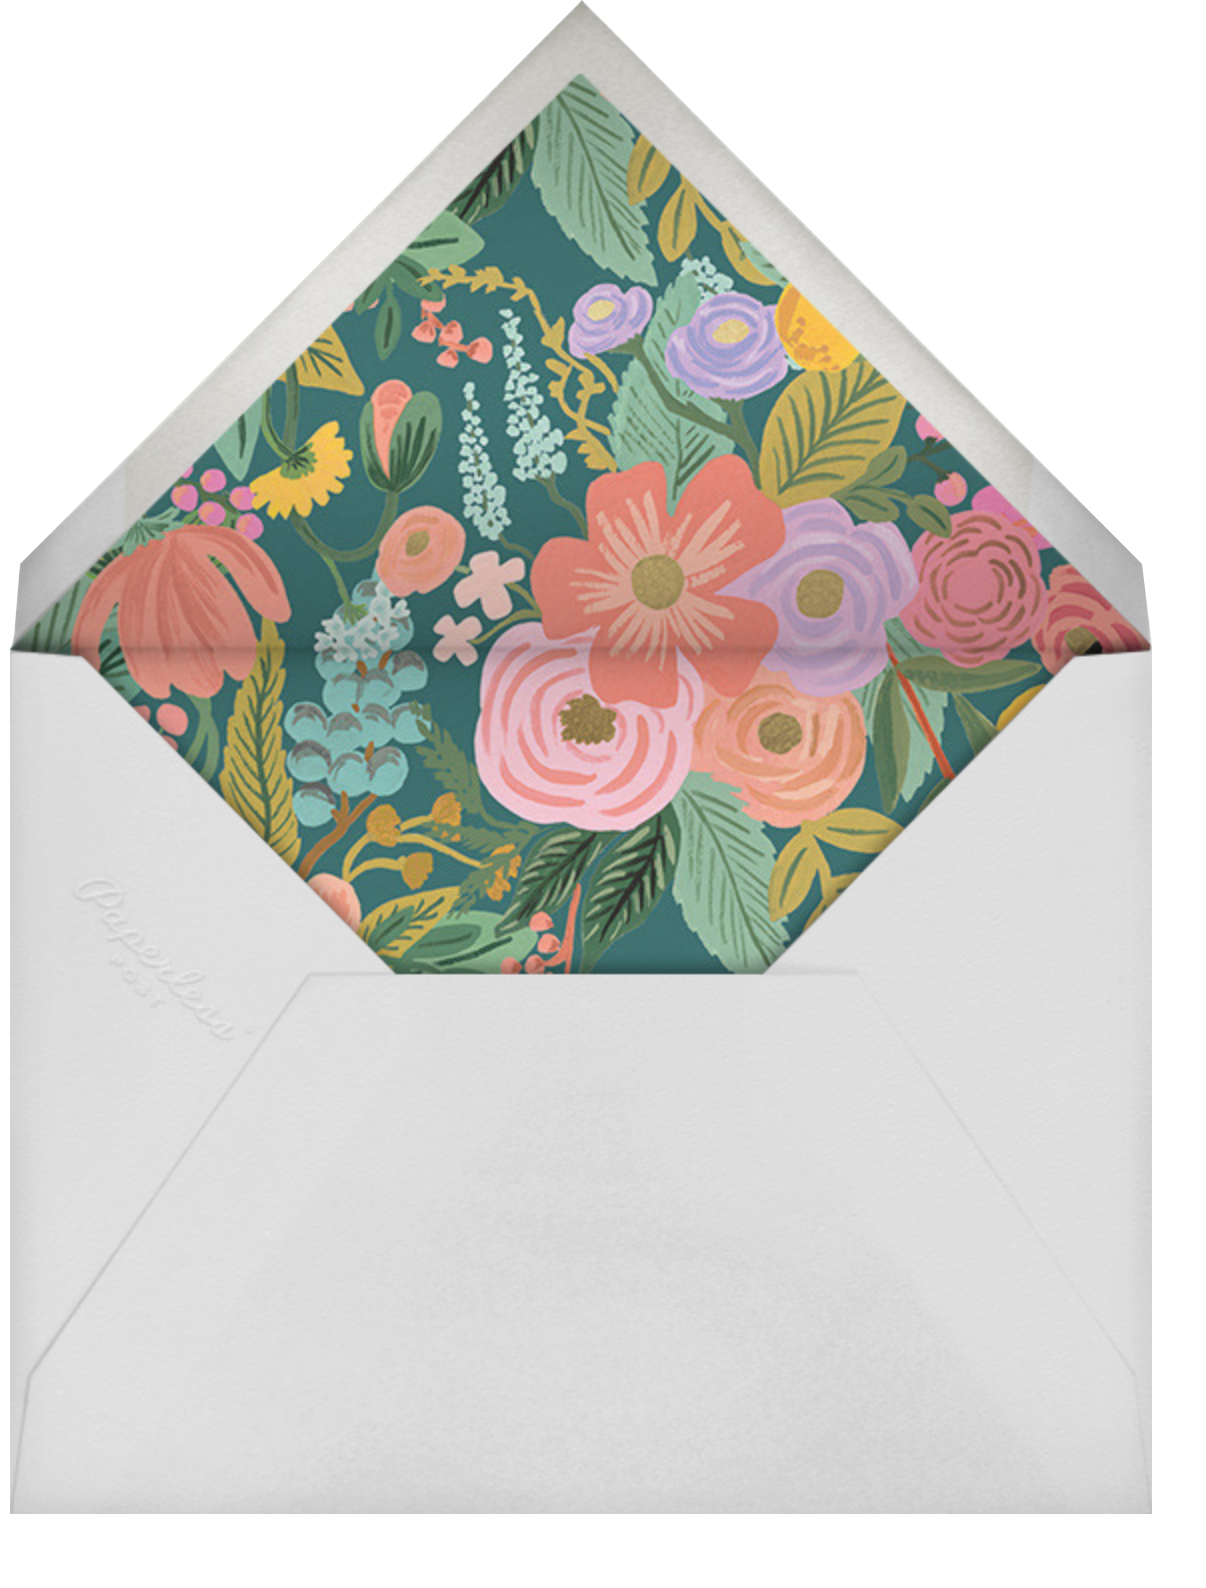 Garden Party (Tall) - Rifle Paper Co. - Adult birthday - envelope back